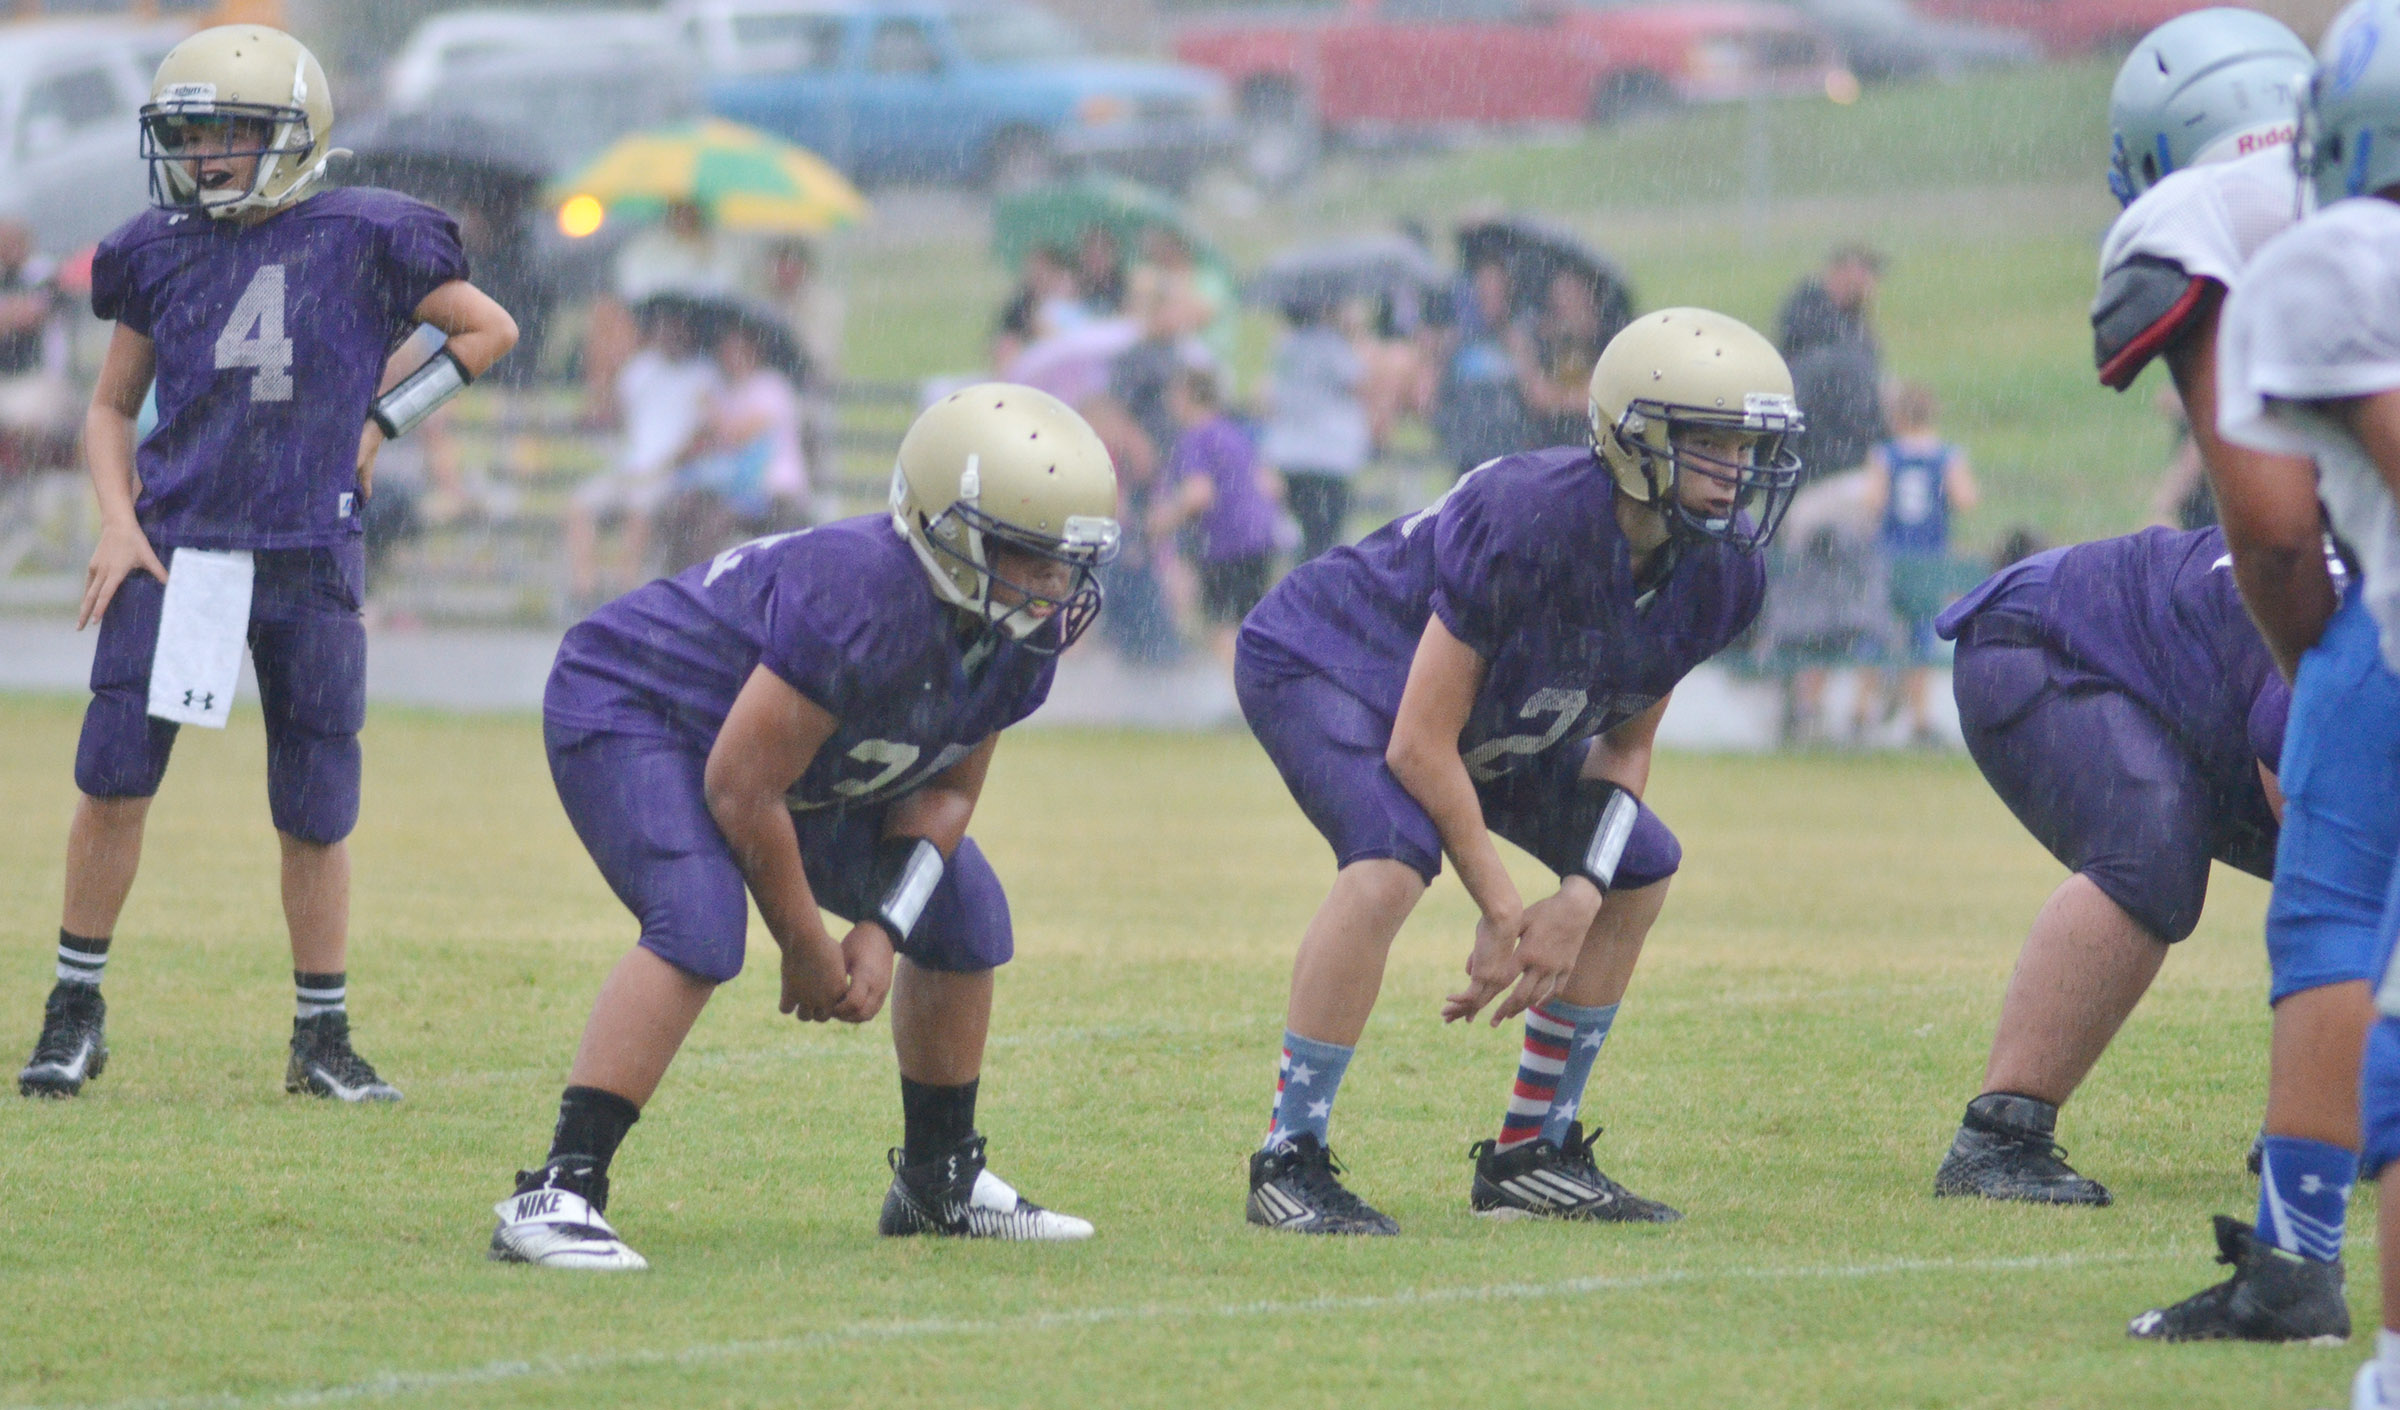 CMS seventh-grader Konner Forbis, at left, looks for the play as his teammates get set.